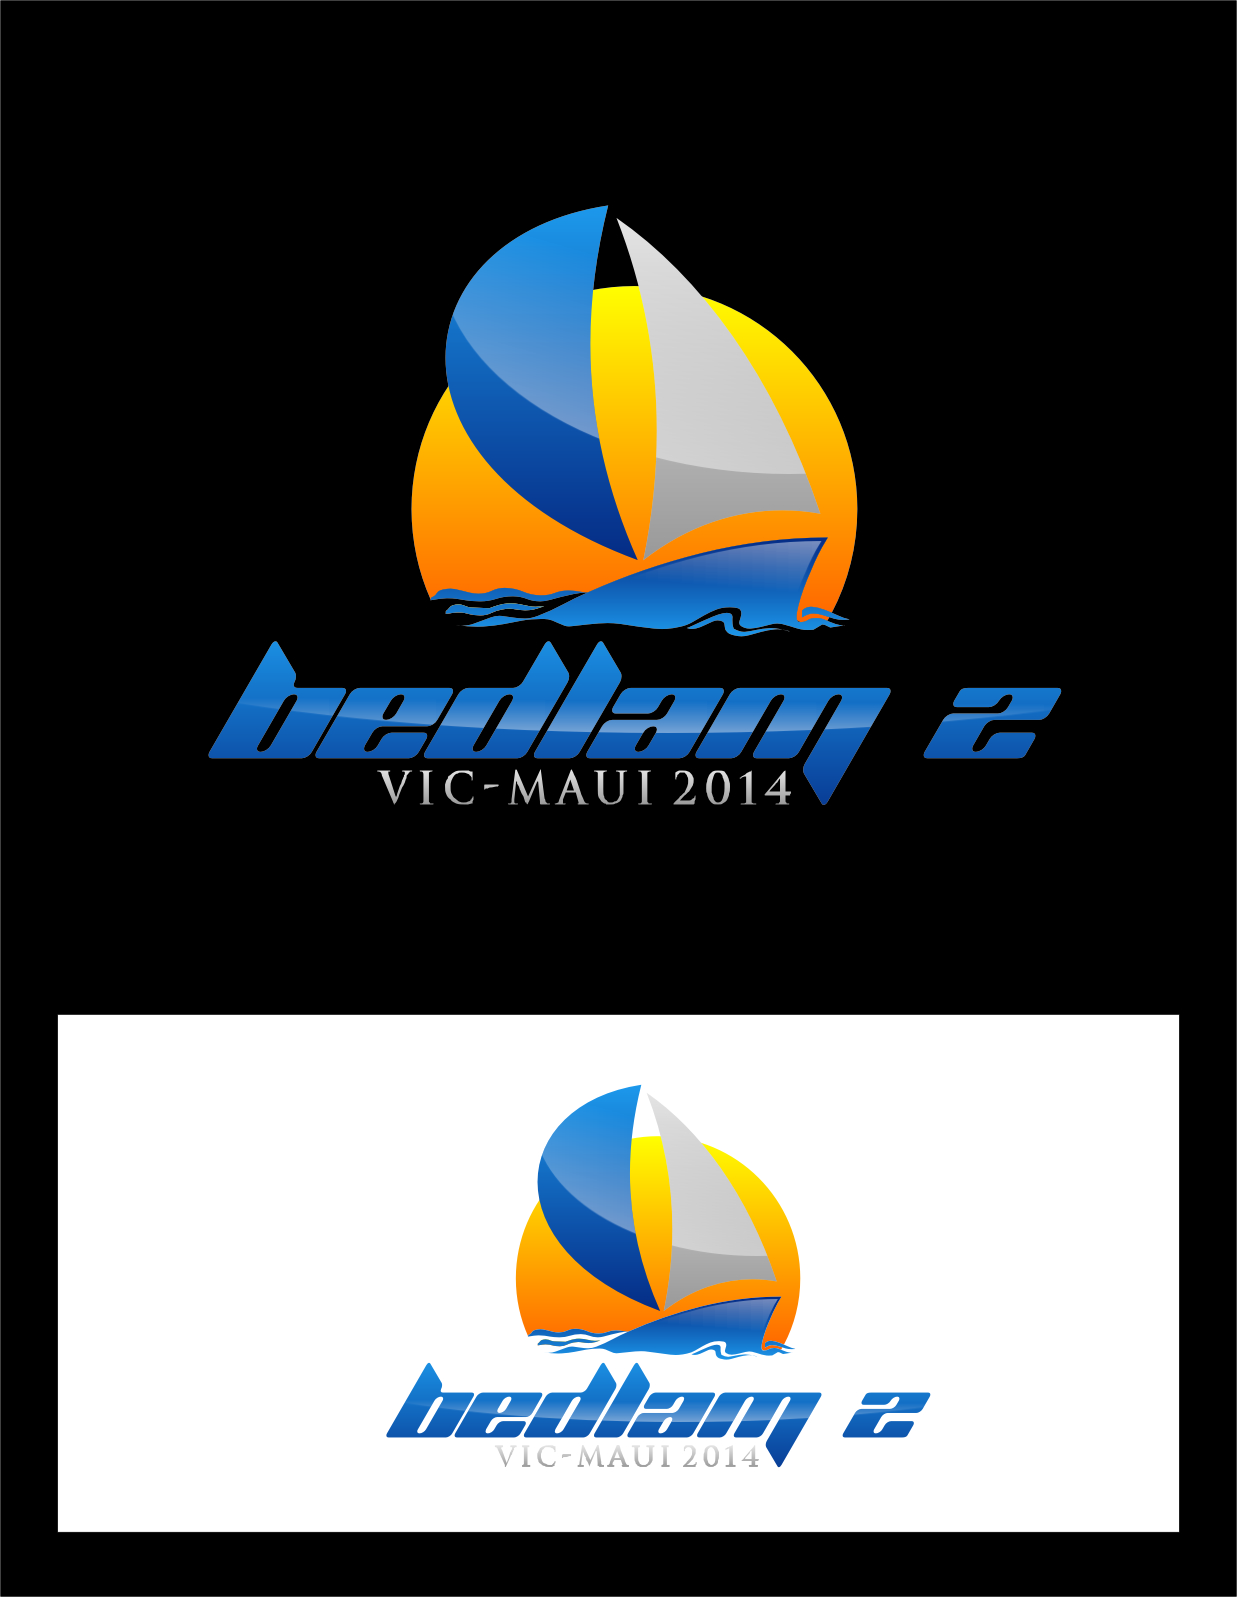 Logo Design by Ngepet_art - Entry No. 42 in the Logo Design Contest Artistic Logo Design for Bedlam 2  Vic-Maui 2014.